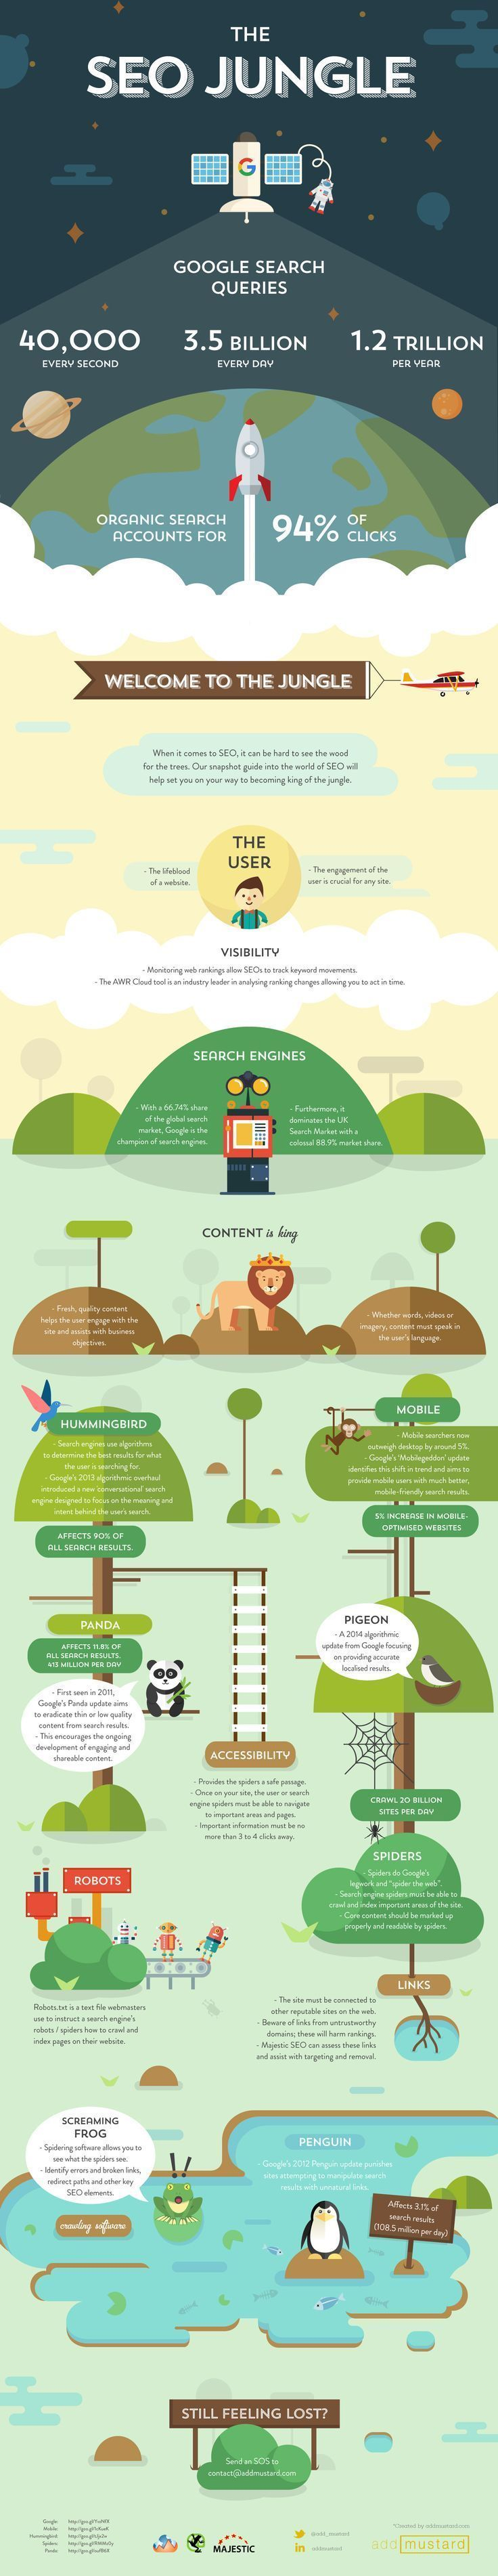 When it comes to search engine optimization, it can be hard to see the wood for the trees. The following guide to the world of SEO will help you set you on your way to becoming king of the jungle. #searchengineoptimizationjobs,